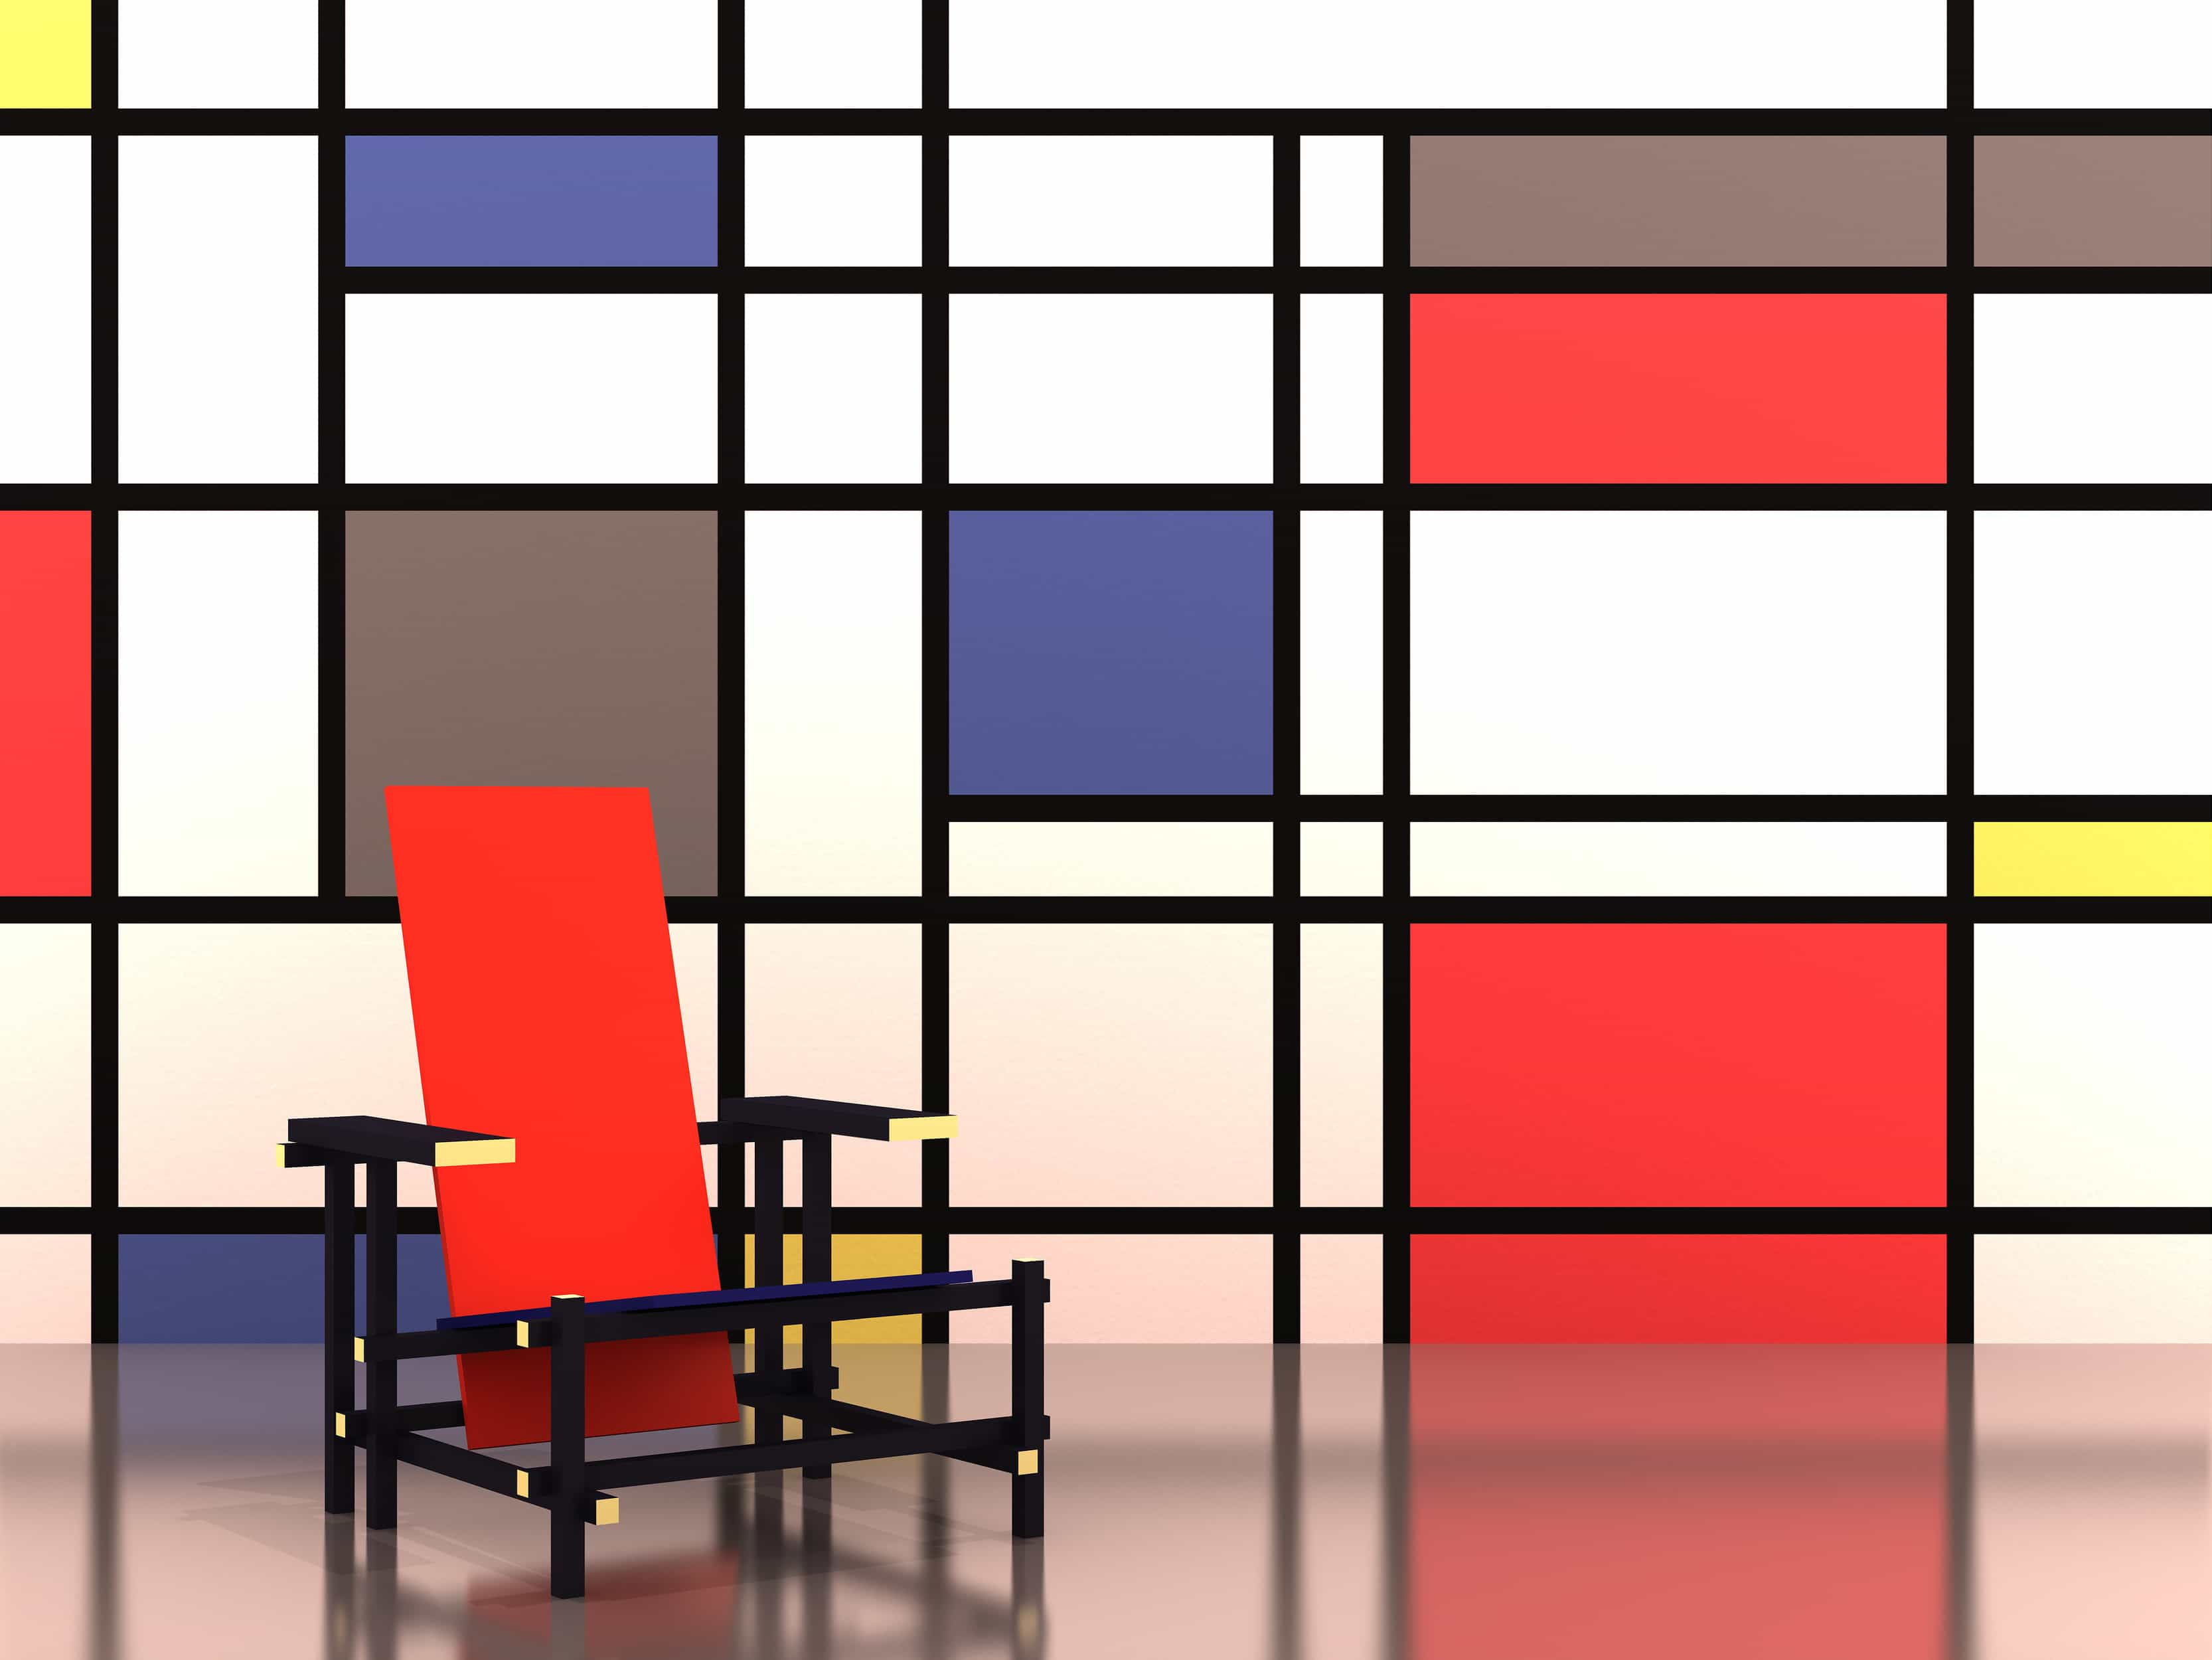 rietveldstoel-black red and blue chair